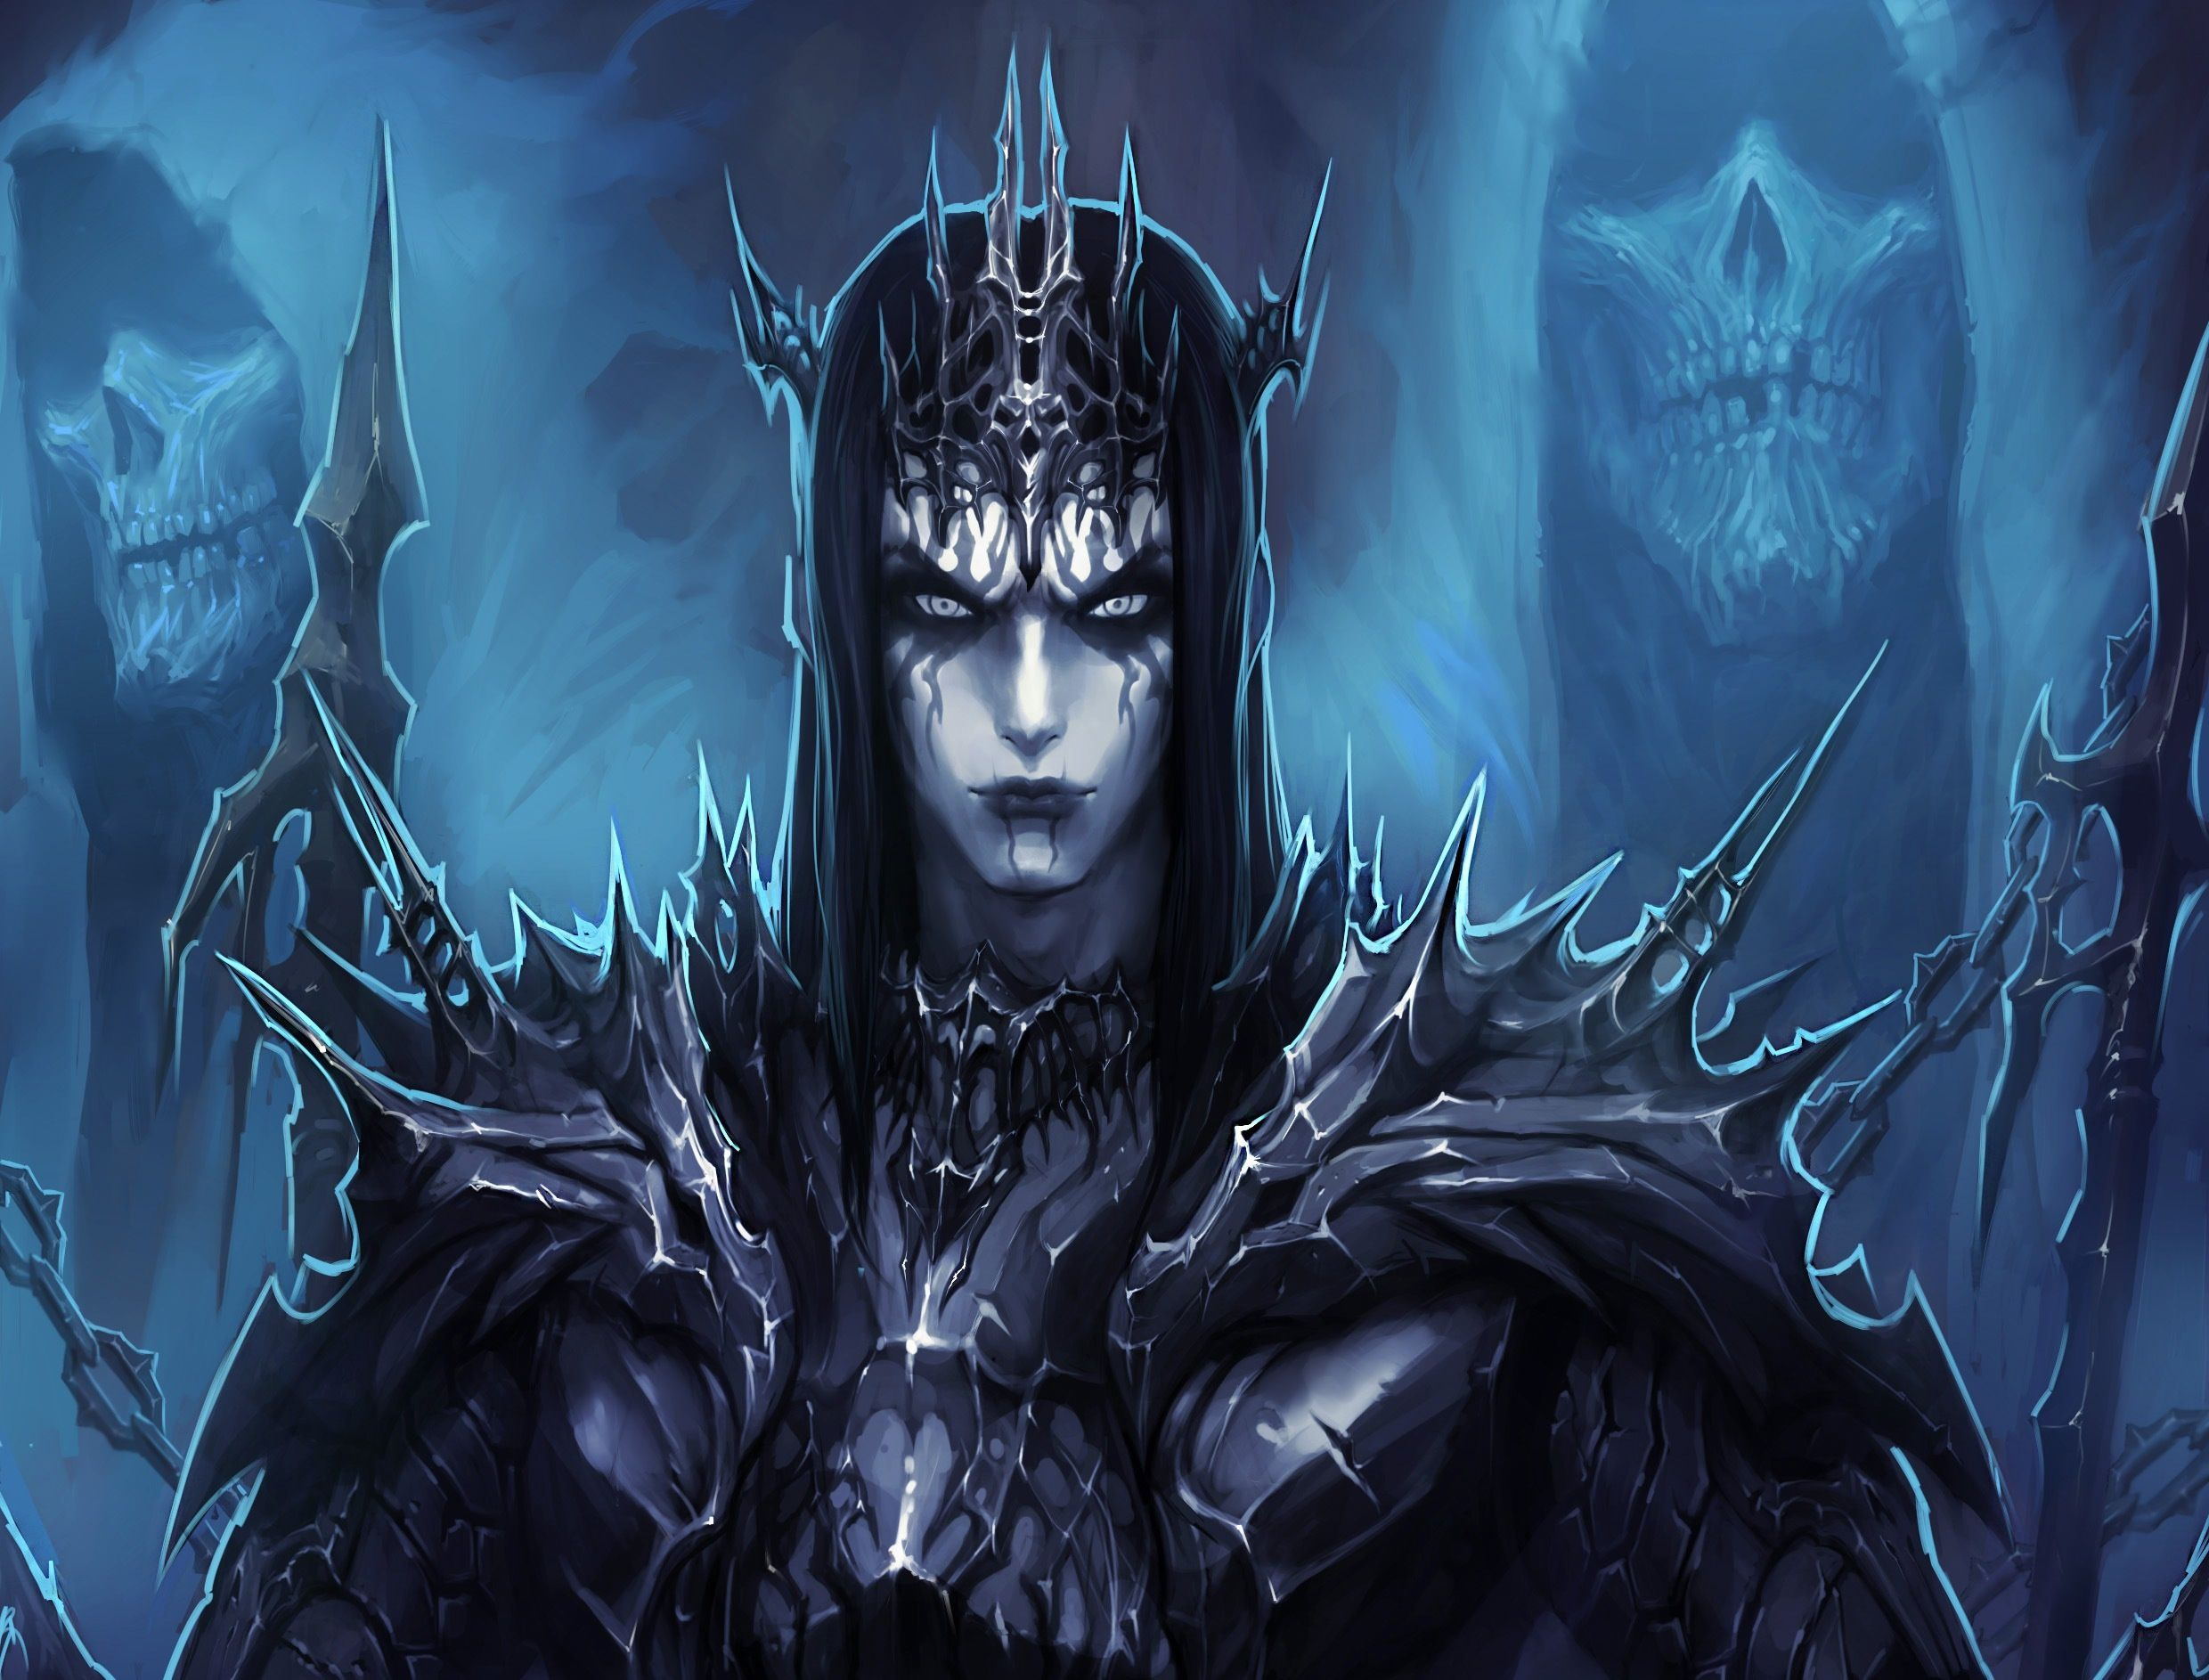 Fantasy Demon Fantasy Man Armor Blue Dark Spikes Skull